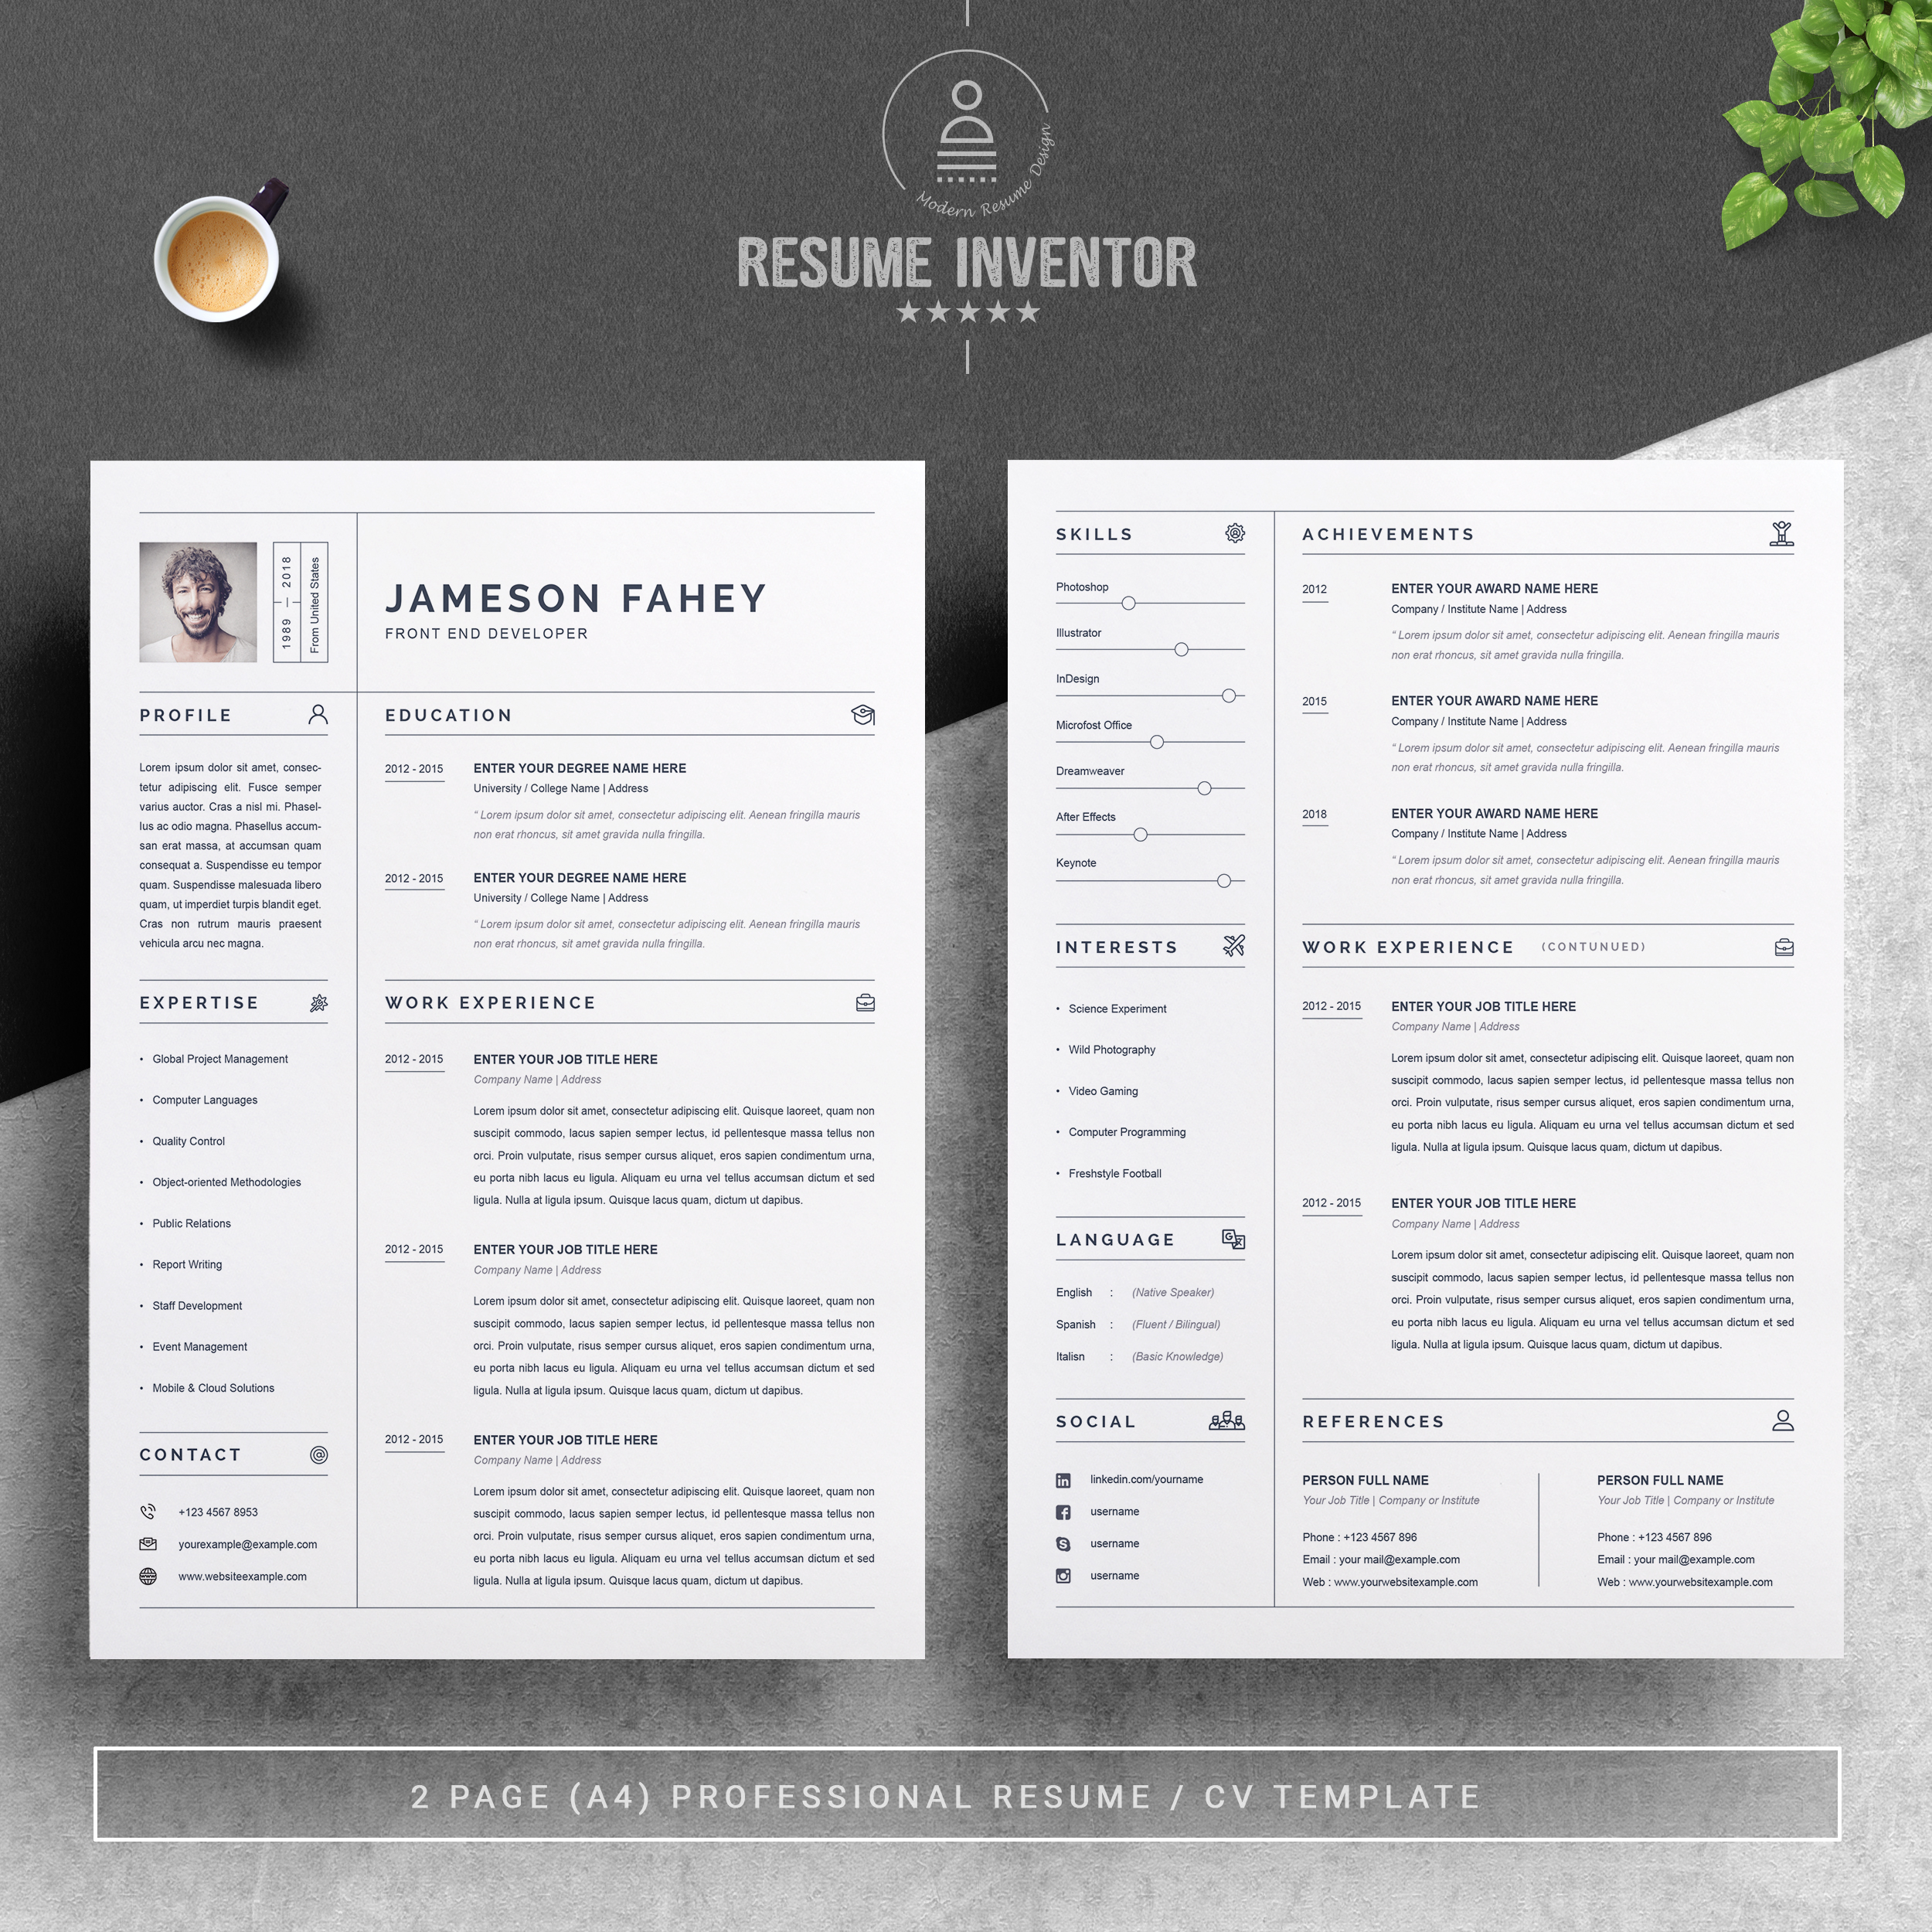 Clean Cv Template from pixelify.nyc3.cdn.digitaloceanspaces.com